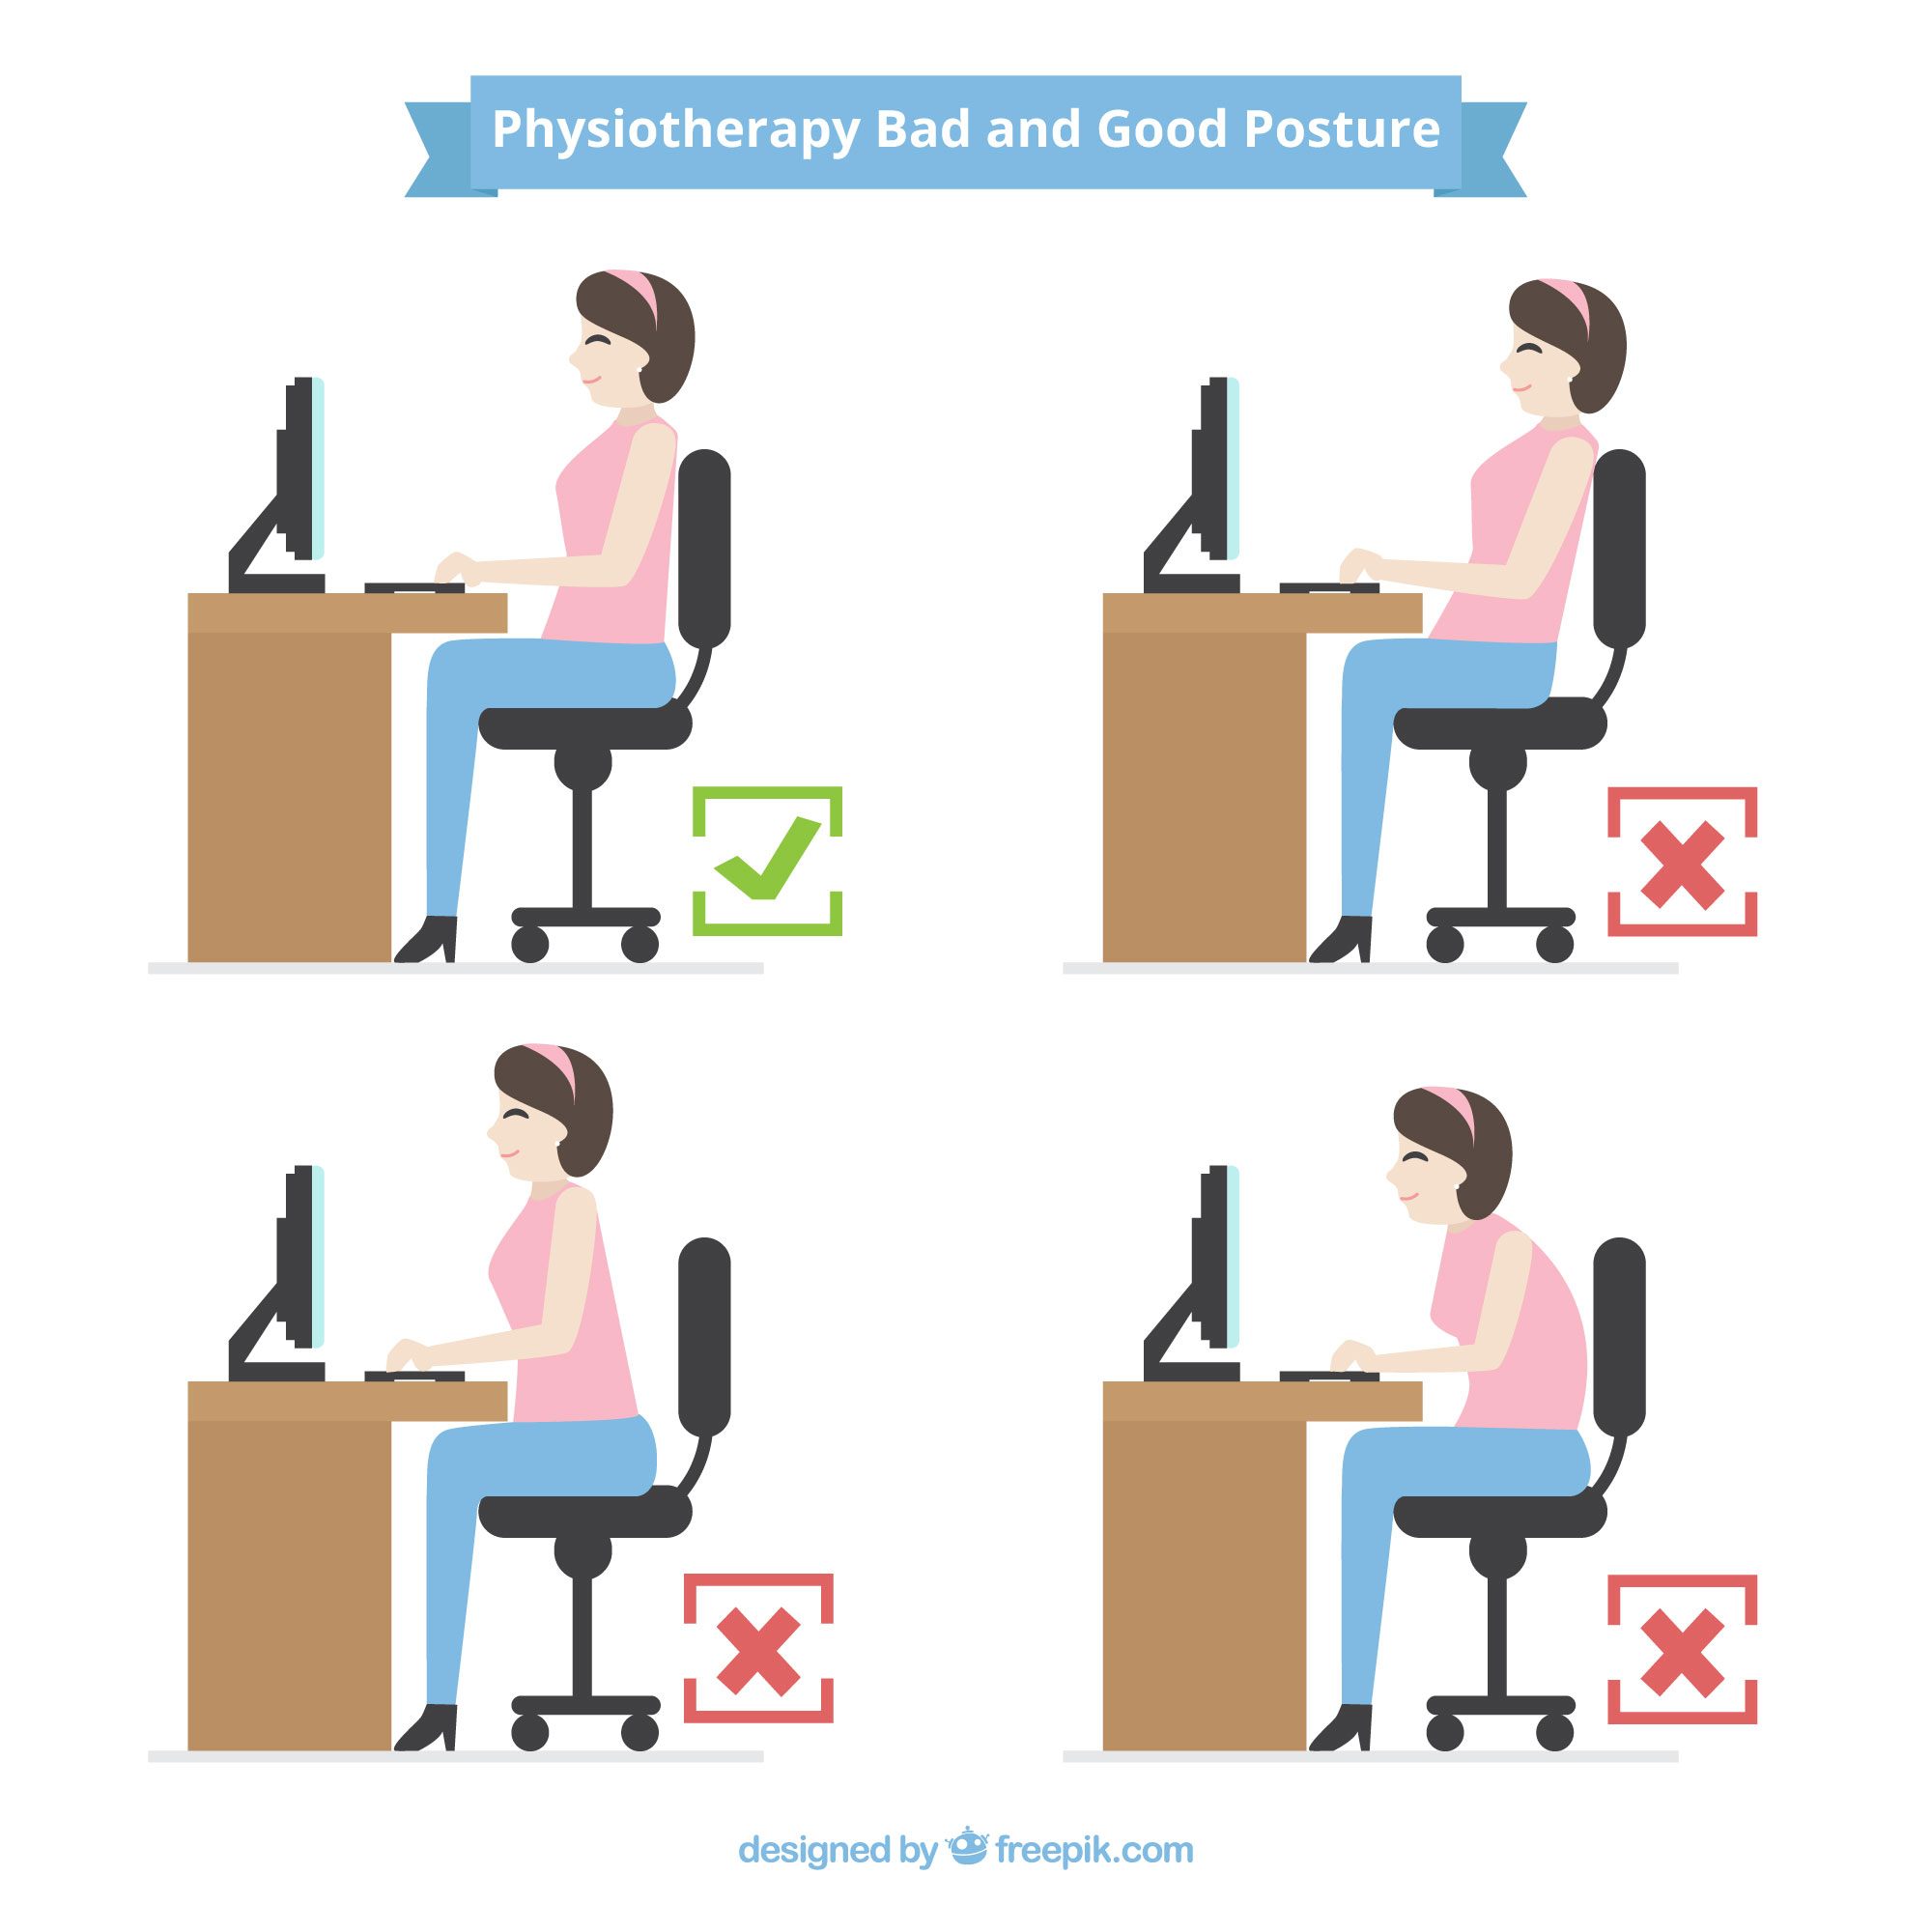 What Is Bad And Good Posture